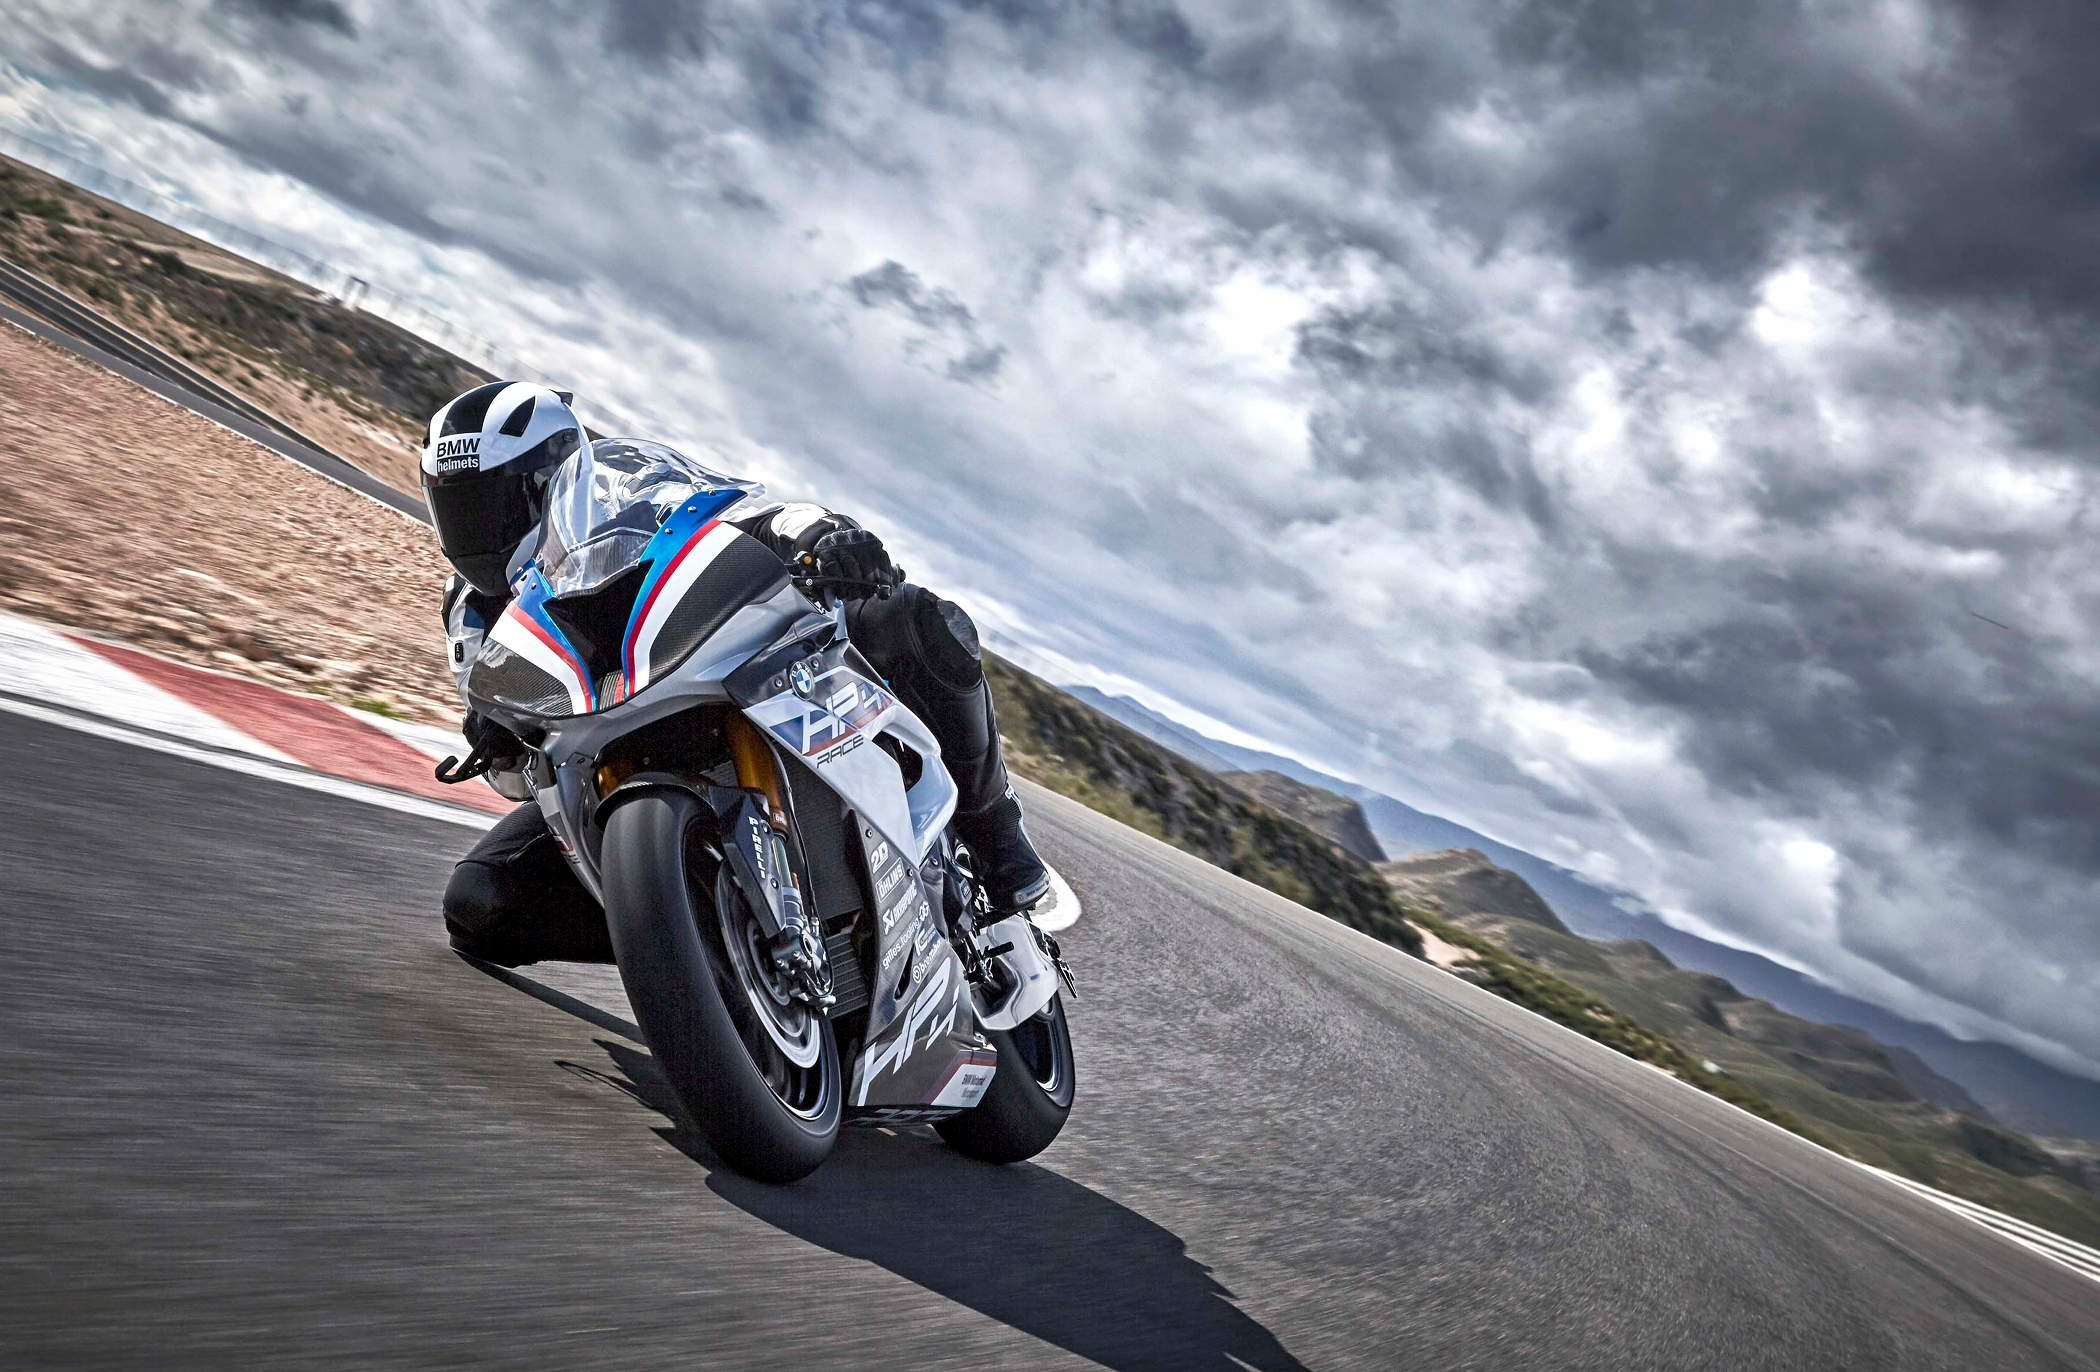 2018 bmw hp4 race.  bmw the hp4 race is more than the sum of its parts this bike pure emotion  from development right up to racetrack passion what has  intended 2018 bmw hp4 race